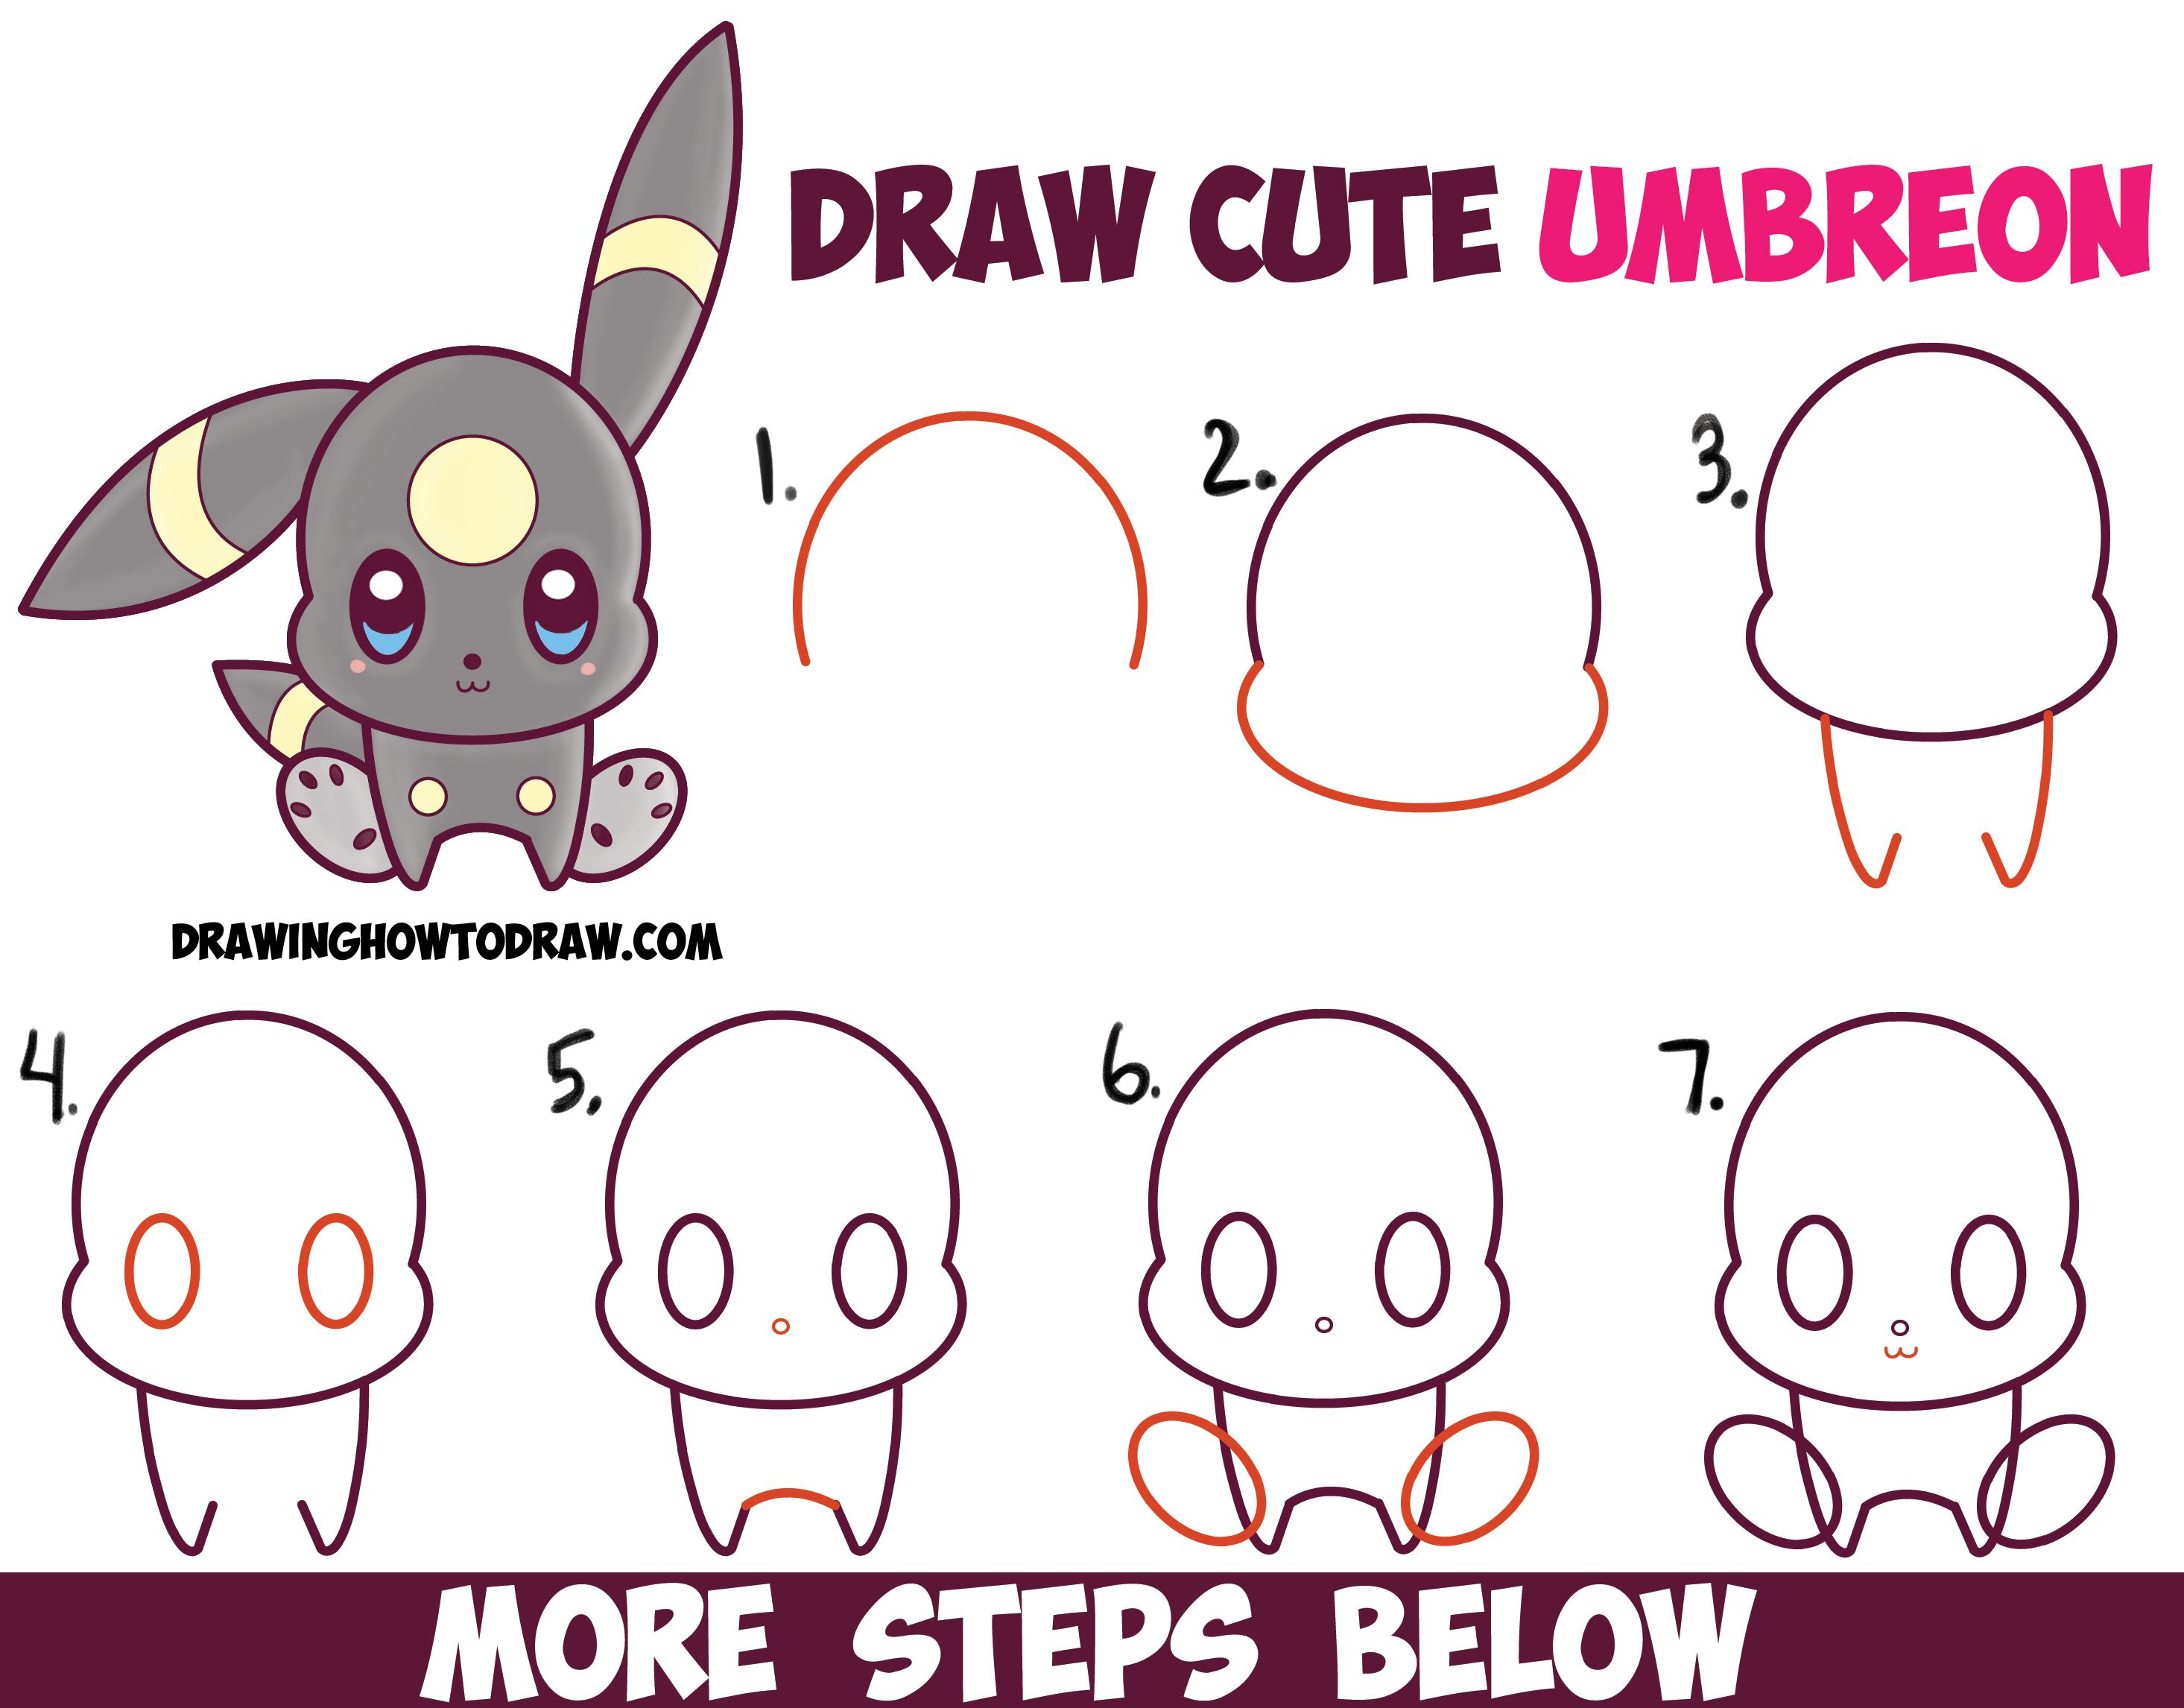 How To Draw Cute Kawaii Chibi Umbreon From Pokemon Easy Step By Step Drawing Tutorial For Kids How To Draw Step By Step Drawing Tutorials Drawing Tutorials For Kids Cute